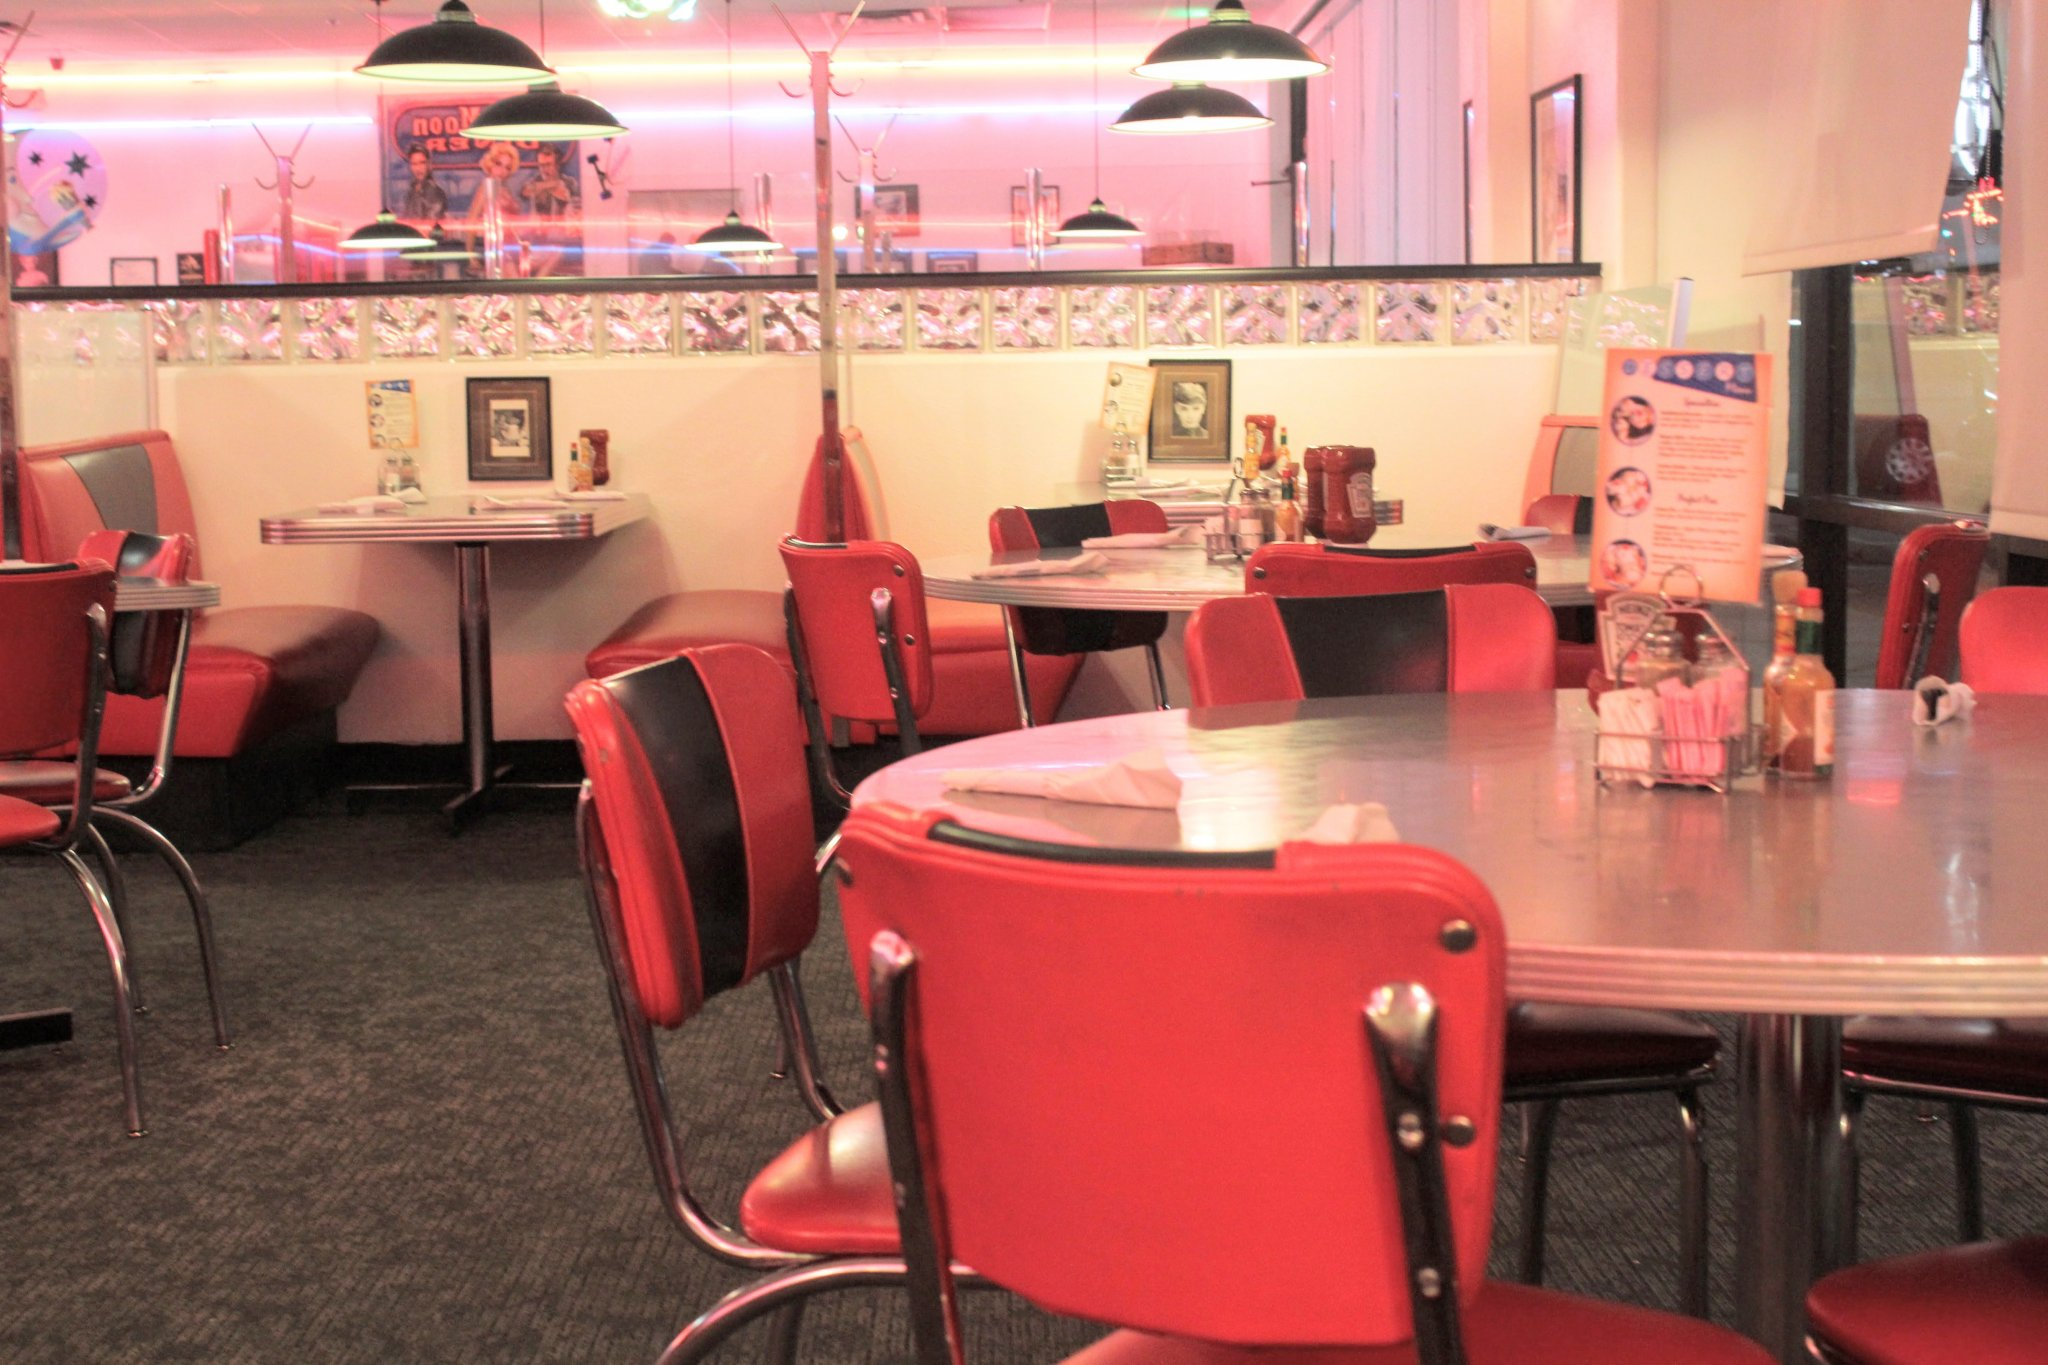 50s themed Blue Moon Diner is one of Farmington's Best Kept Secrets